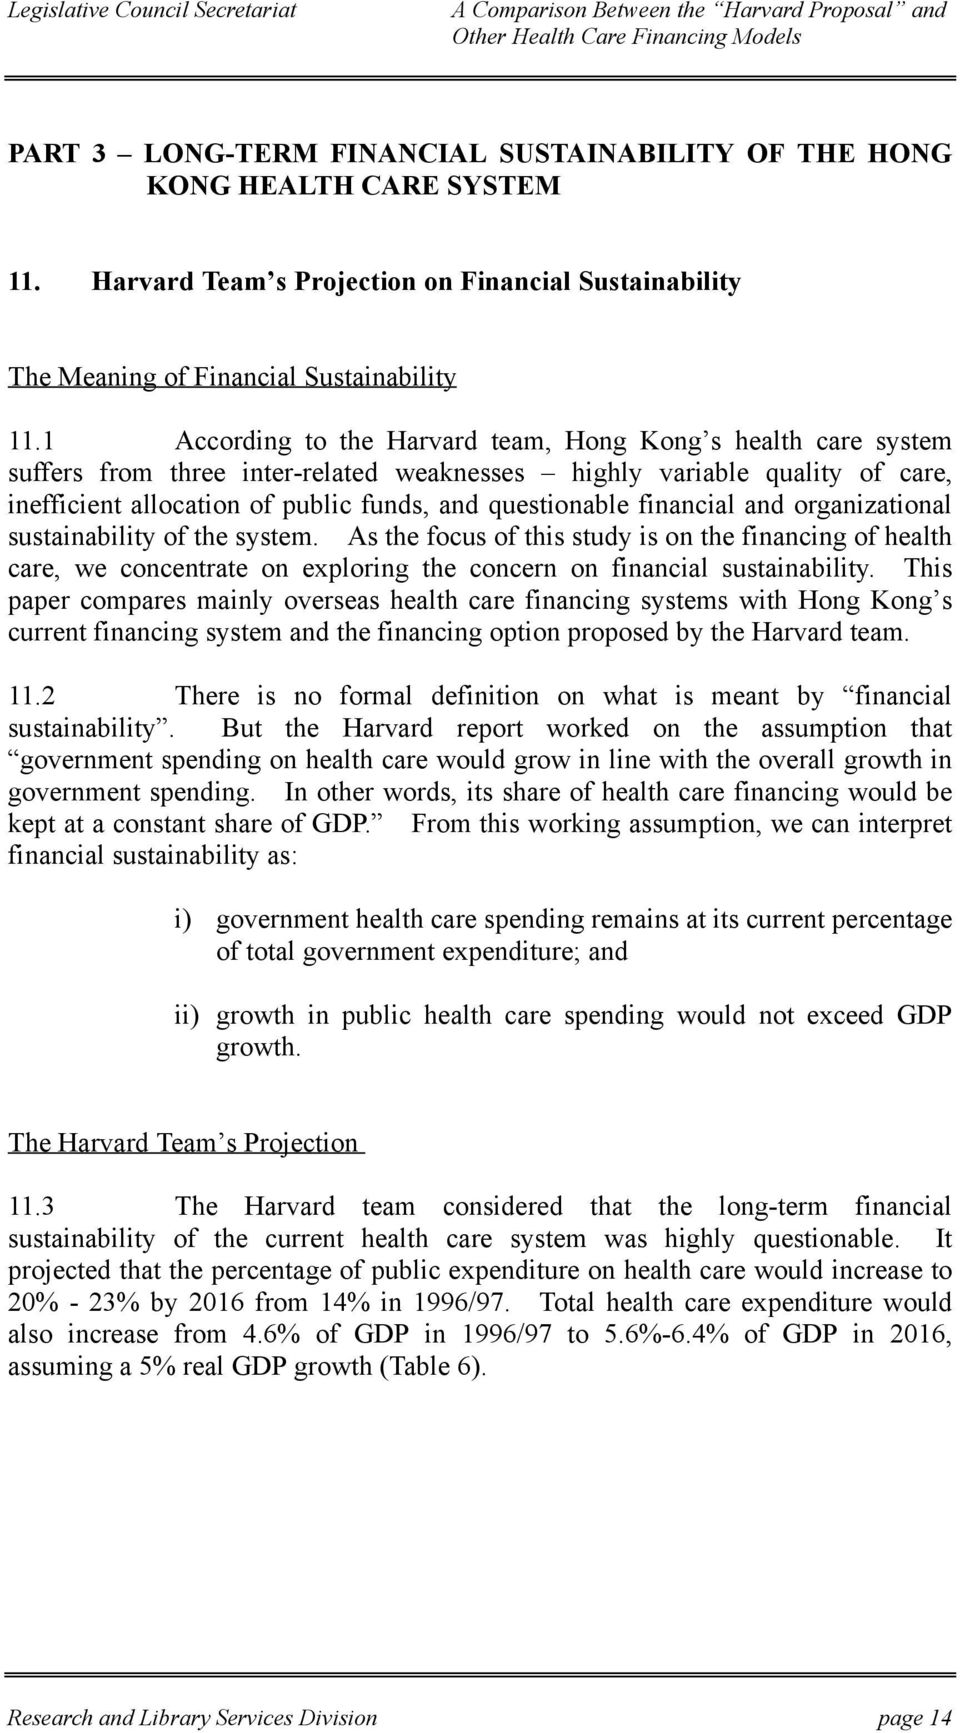 financial and organizational sustainability of the system. As the focus of this study is on the financing of health care, we concentrate on exploring the concern on financial sustainability.